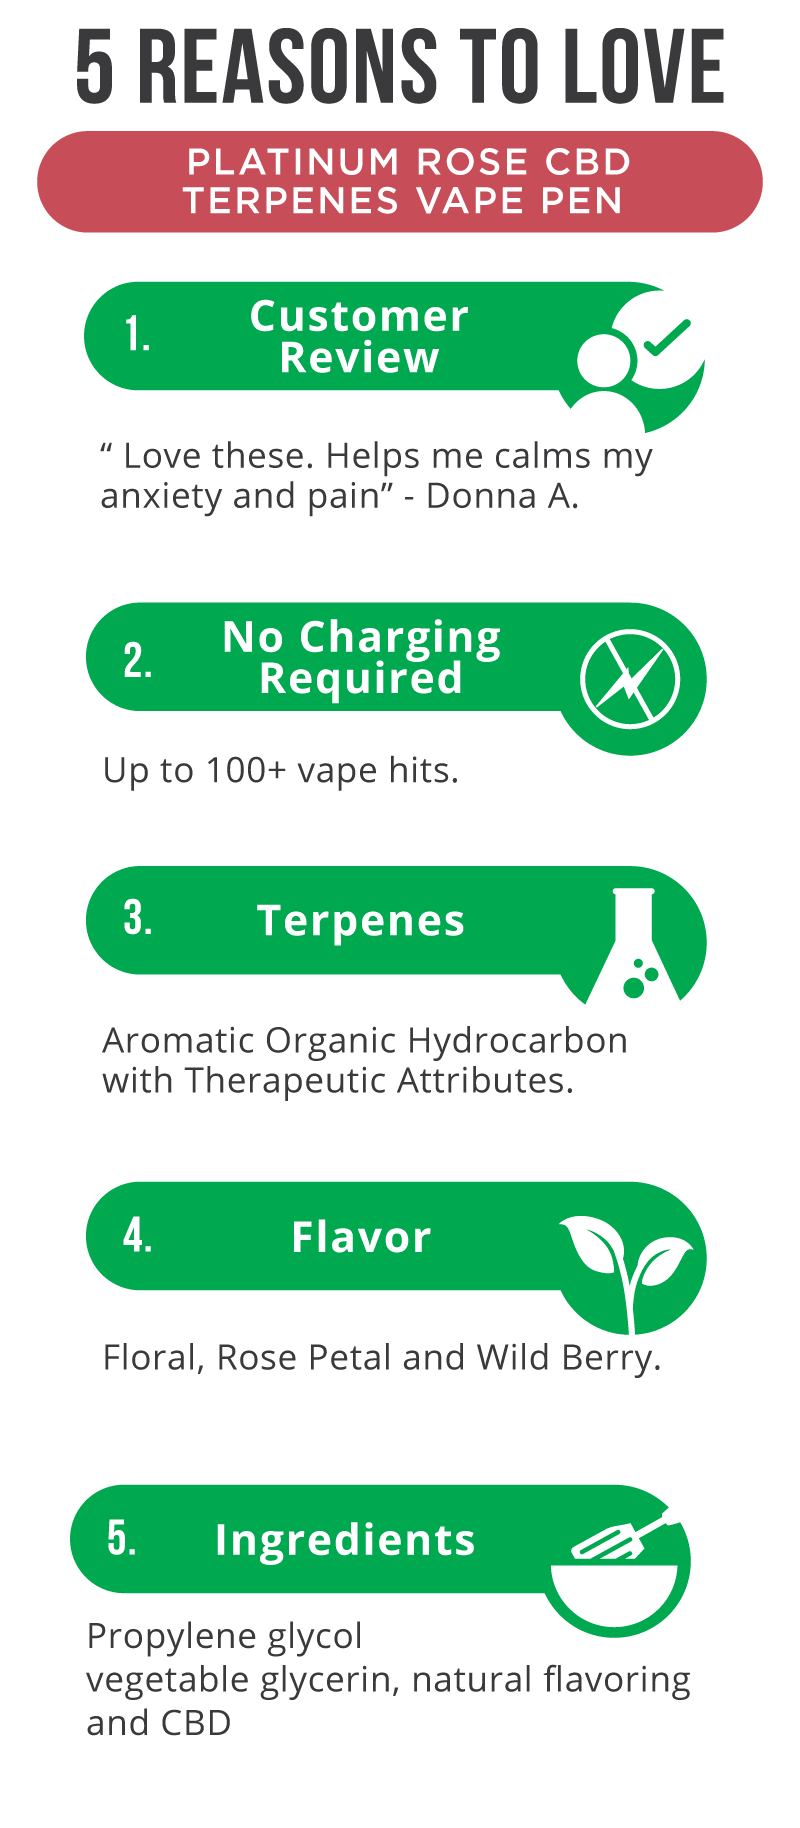 5 Reasons Platinum Rose CBD Terpenes Vape Pen CBDfx